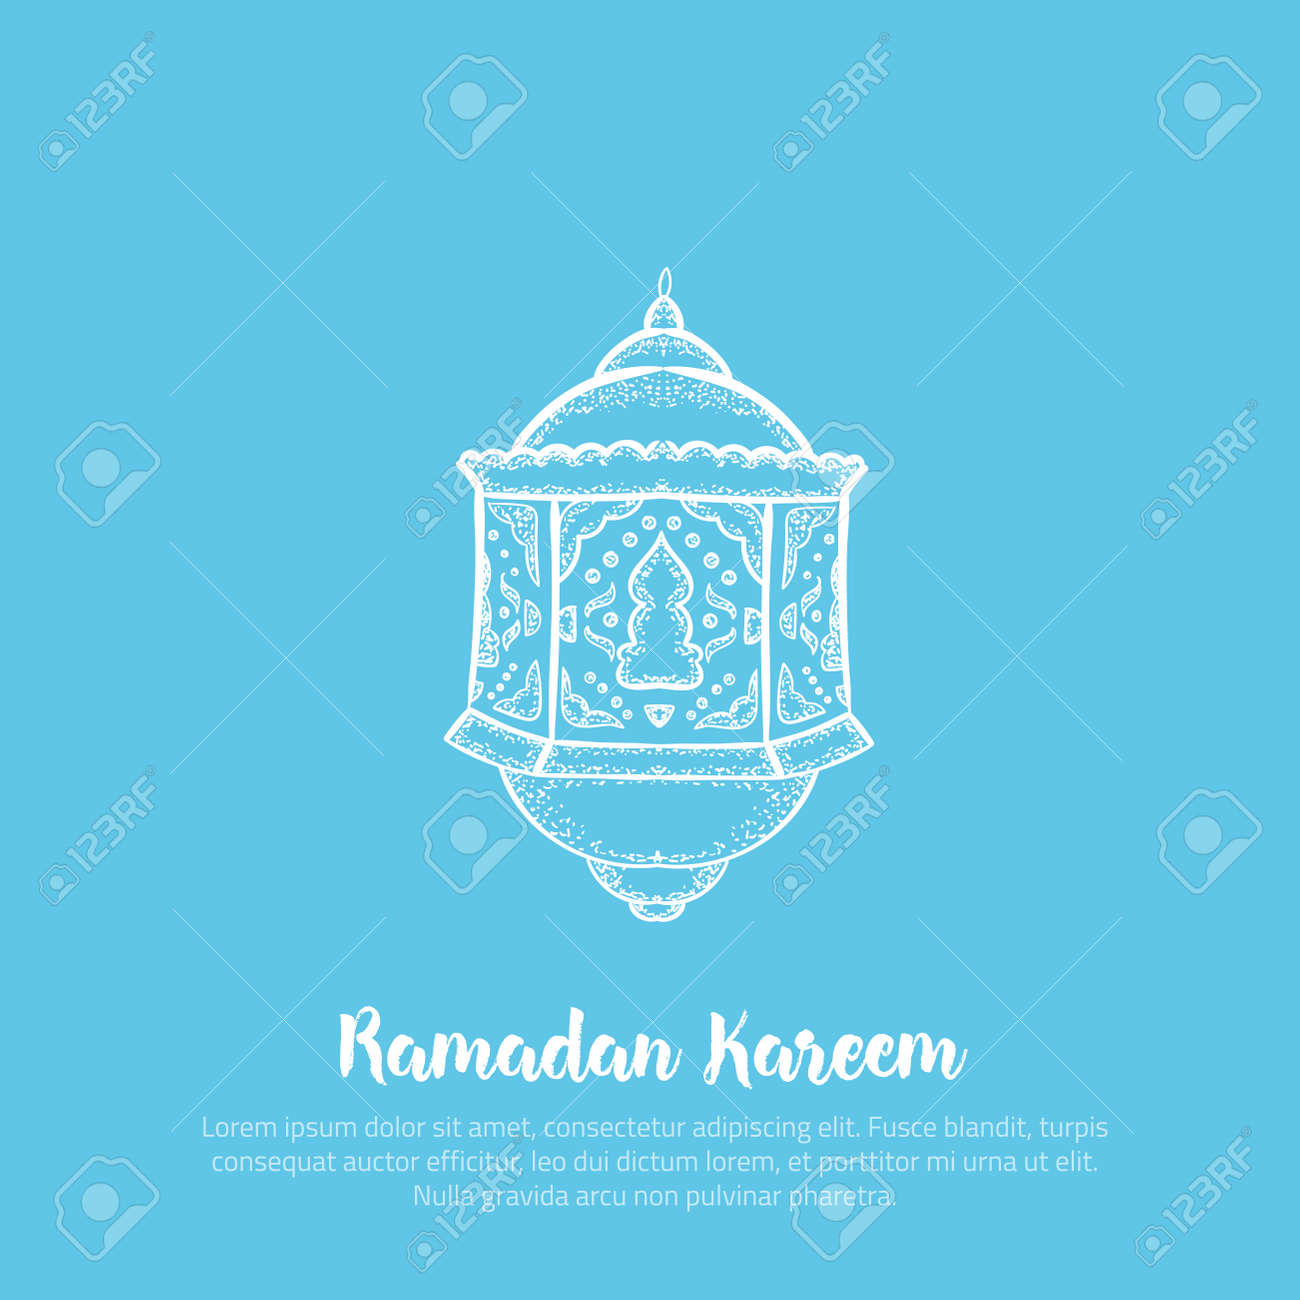 photograph regarding Ramadan Cards Printable identified as Printable minimalistic Ramadan Kareem greeting card vector case in point..